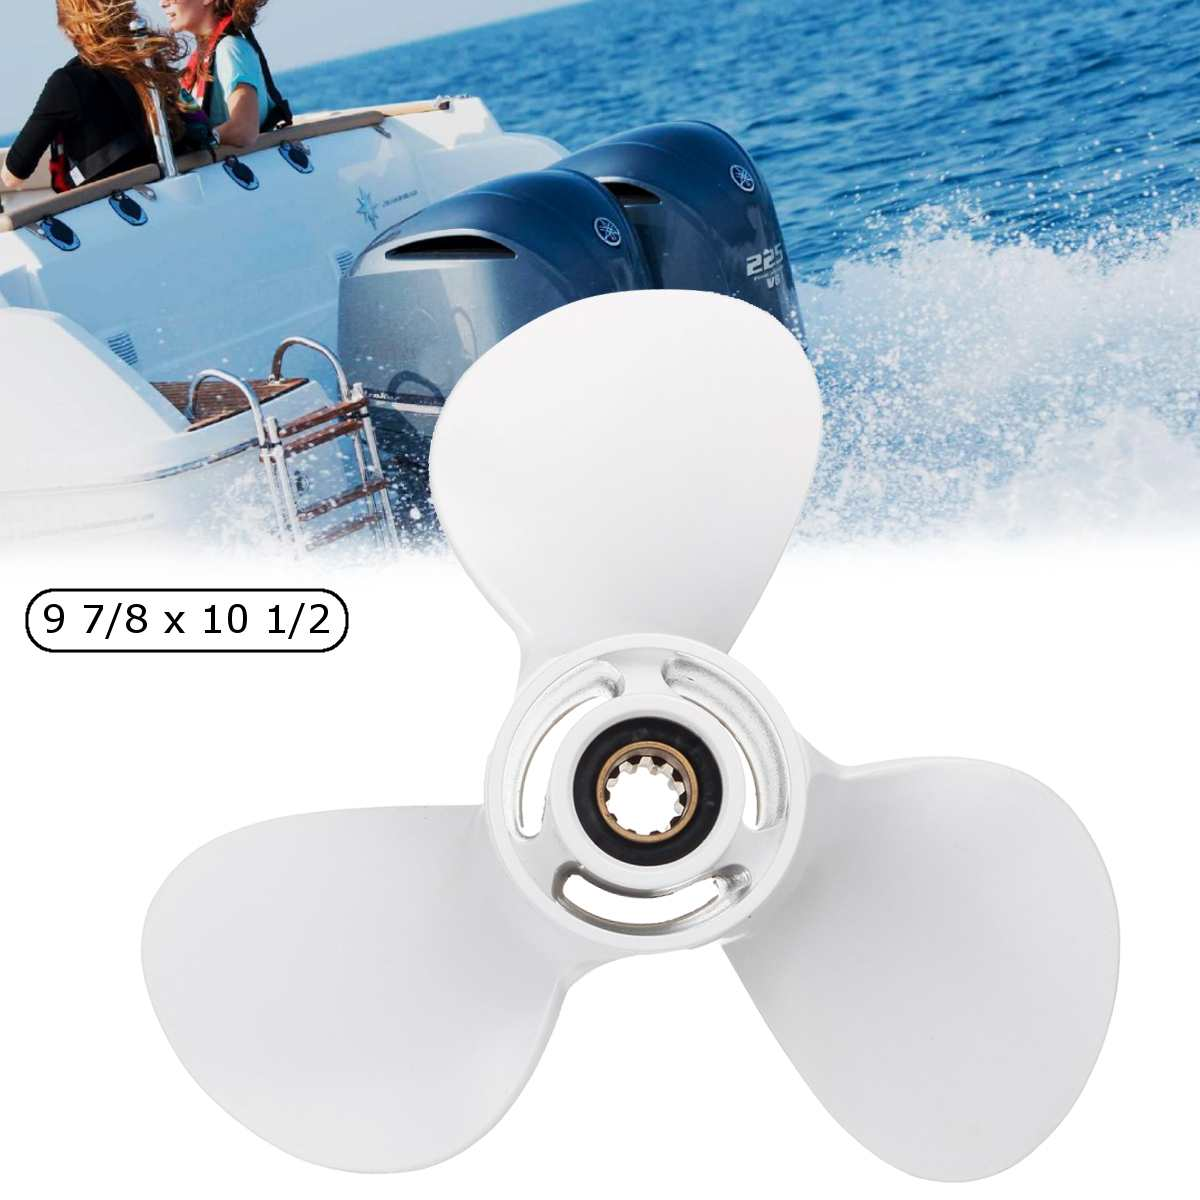 664-45945-00-EL Aluminum Alloy 9 7/8 x 10 1/2 Outboard Propeller For Yamaha 20-30HP White 3 Blades 10 Spline Tooth R Rotation664-45945-00-EL Aluminum Alloy 9 7/8 x 10 1/2 Outboard Propeller For Yamaha 20-30HP White 3 Blades 10 Spline Tooth R Rotation